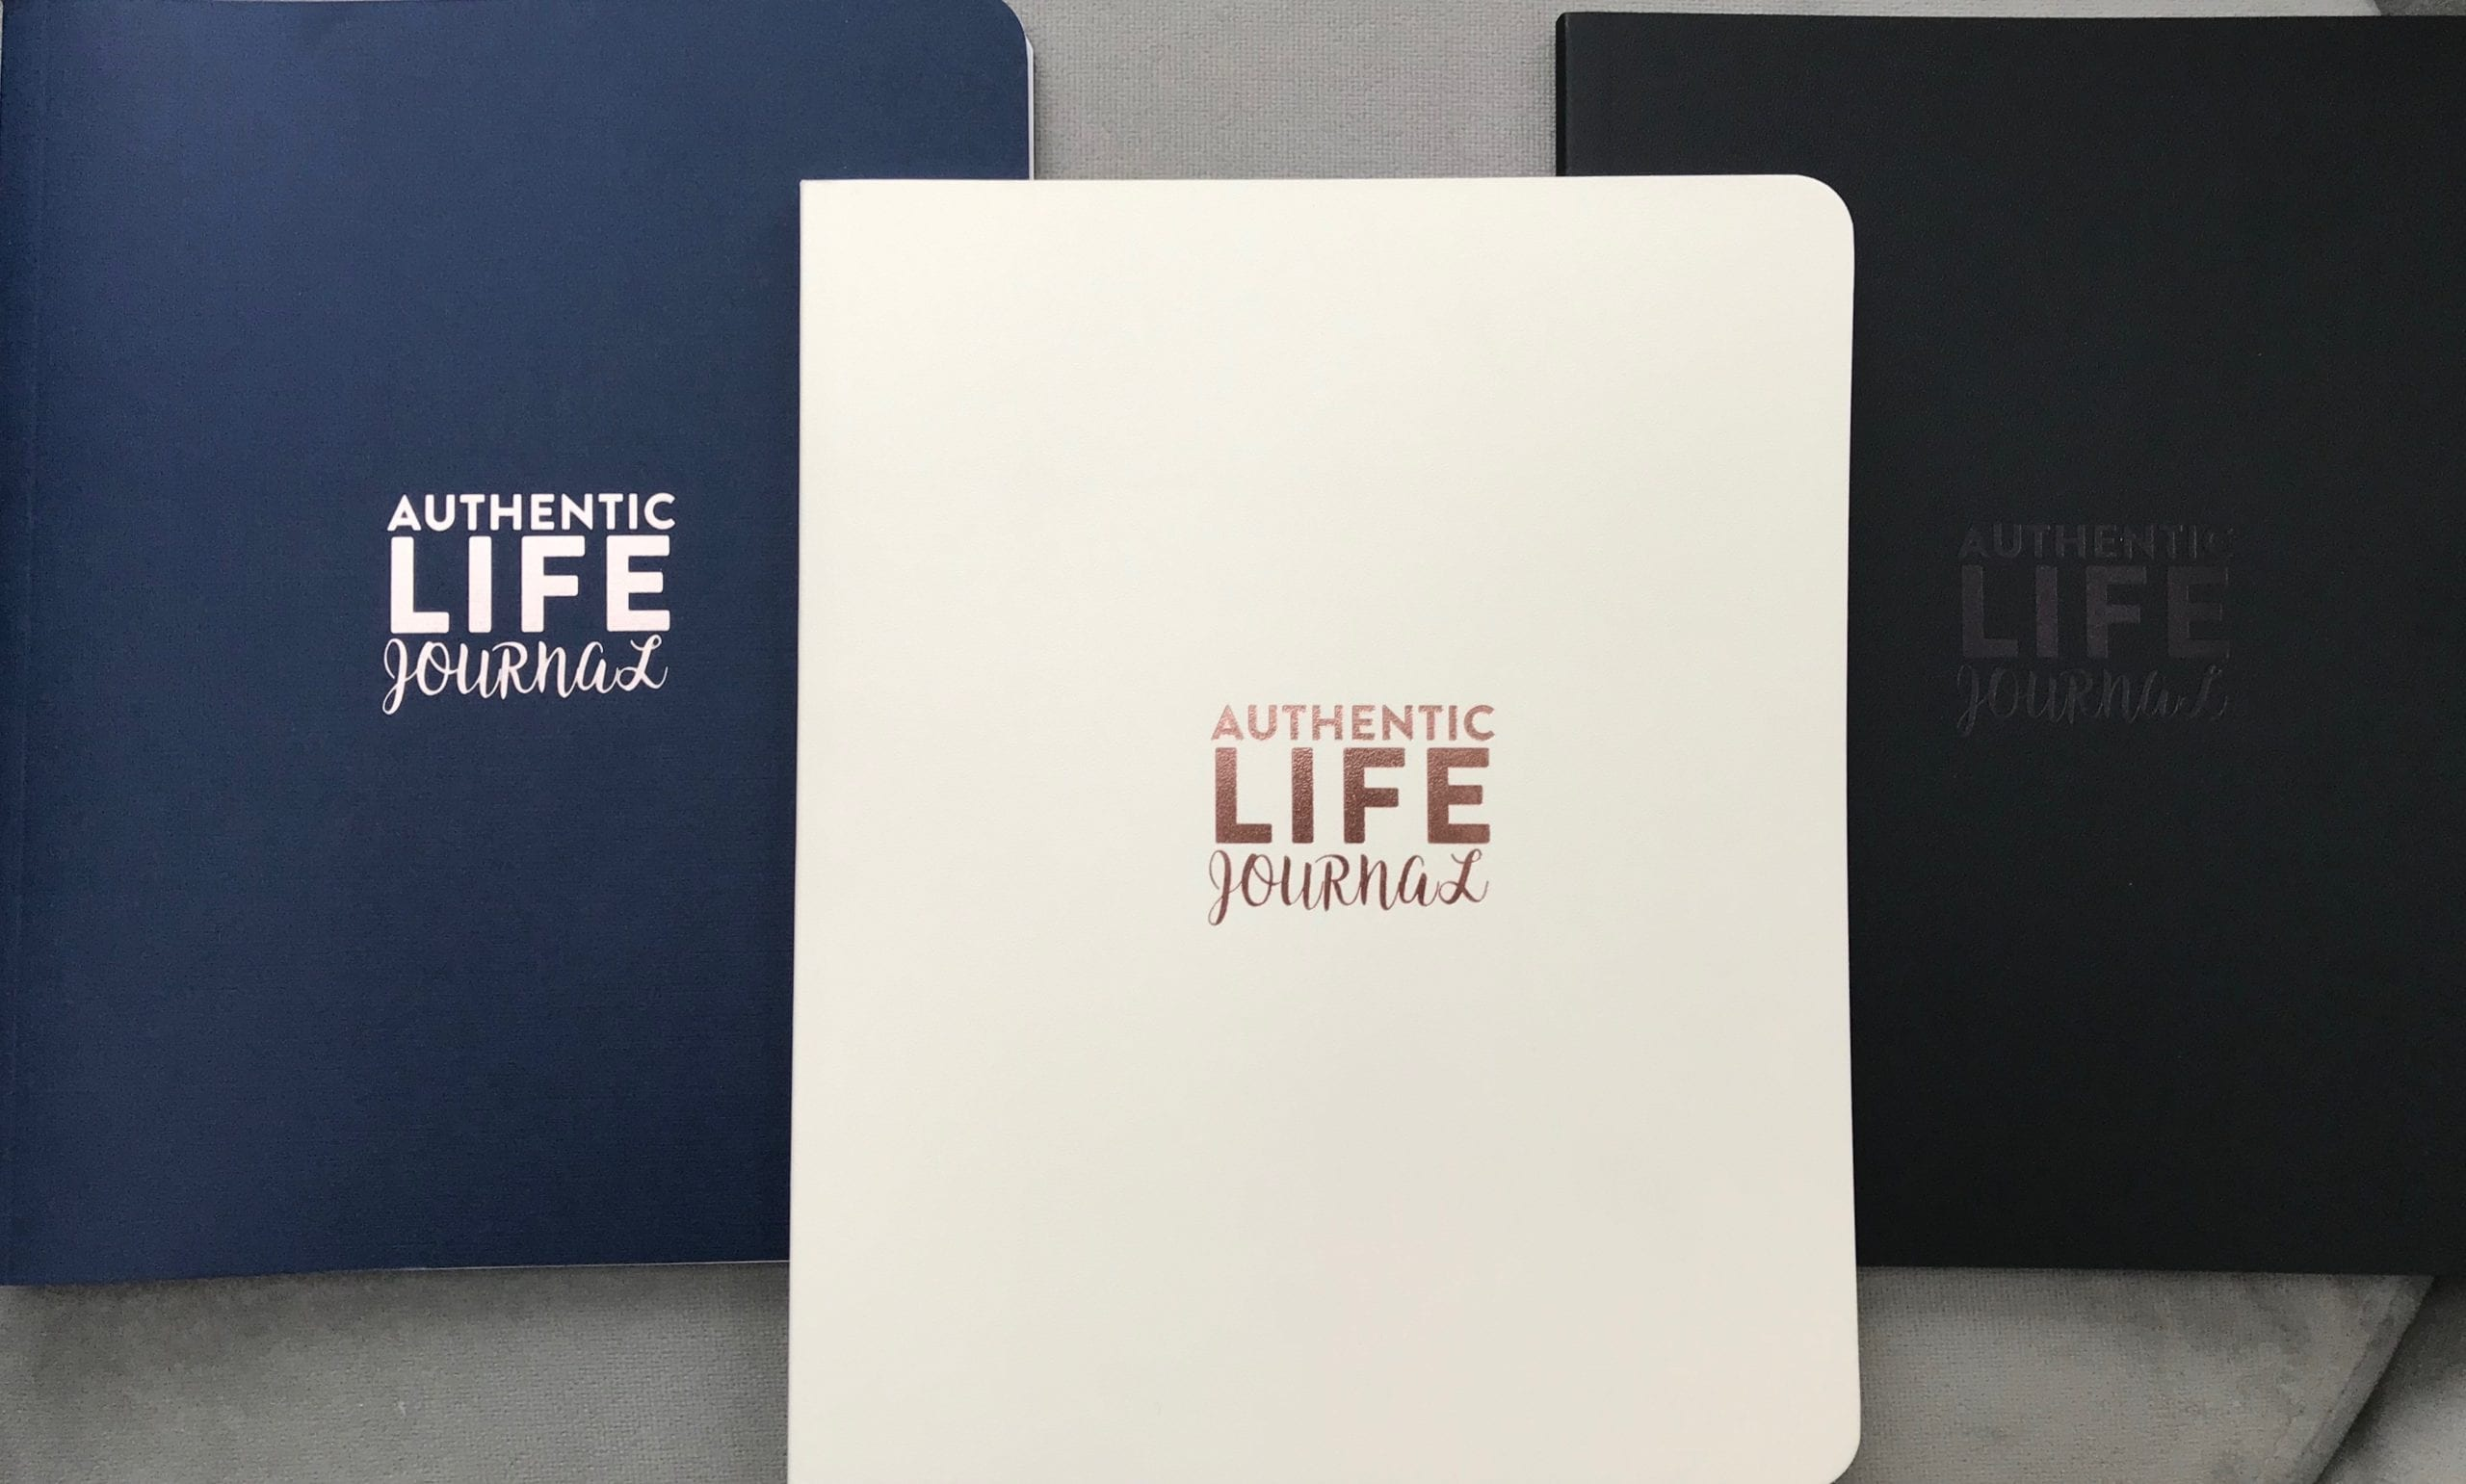 Authentic Life Journal